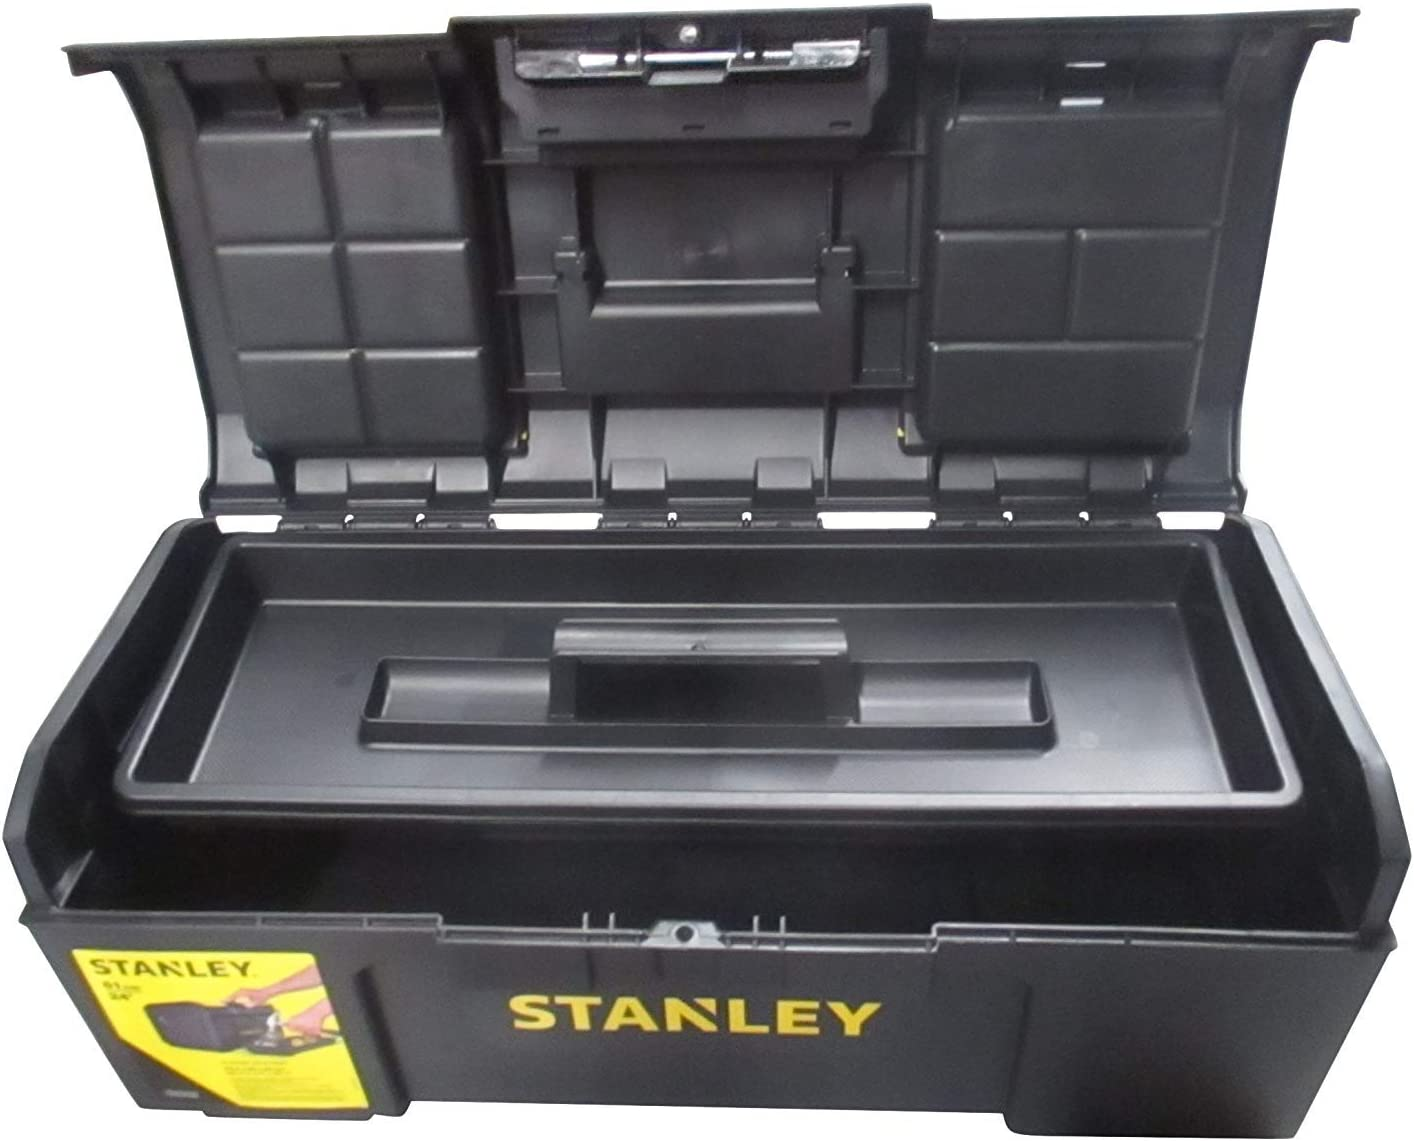 Stanley 179216 16-inch One Touch Toolbox DIY